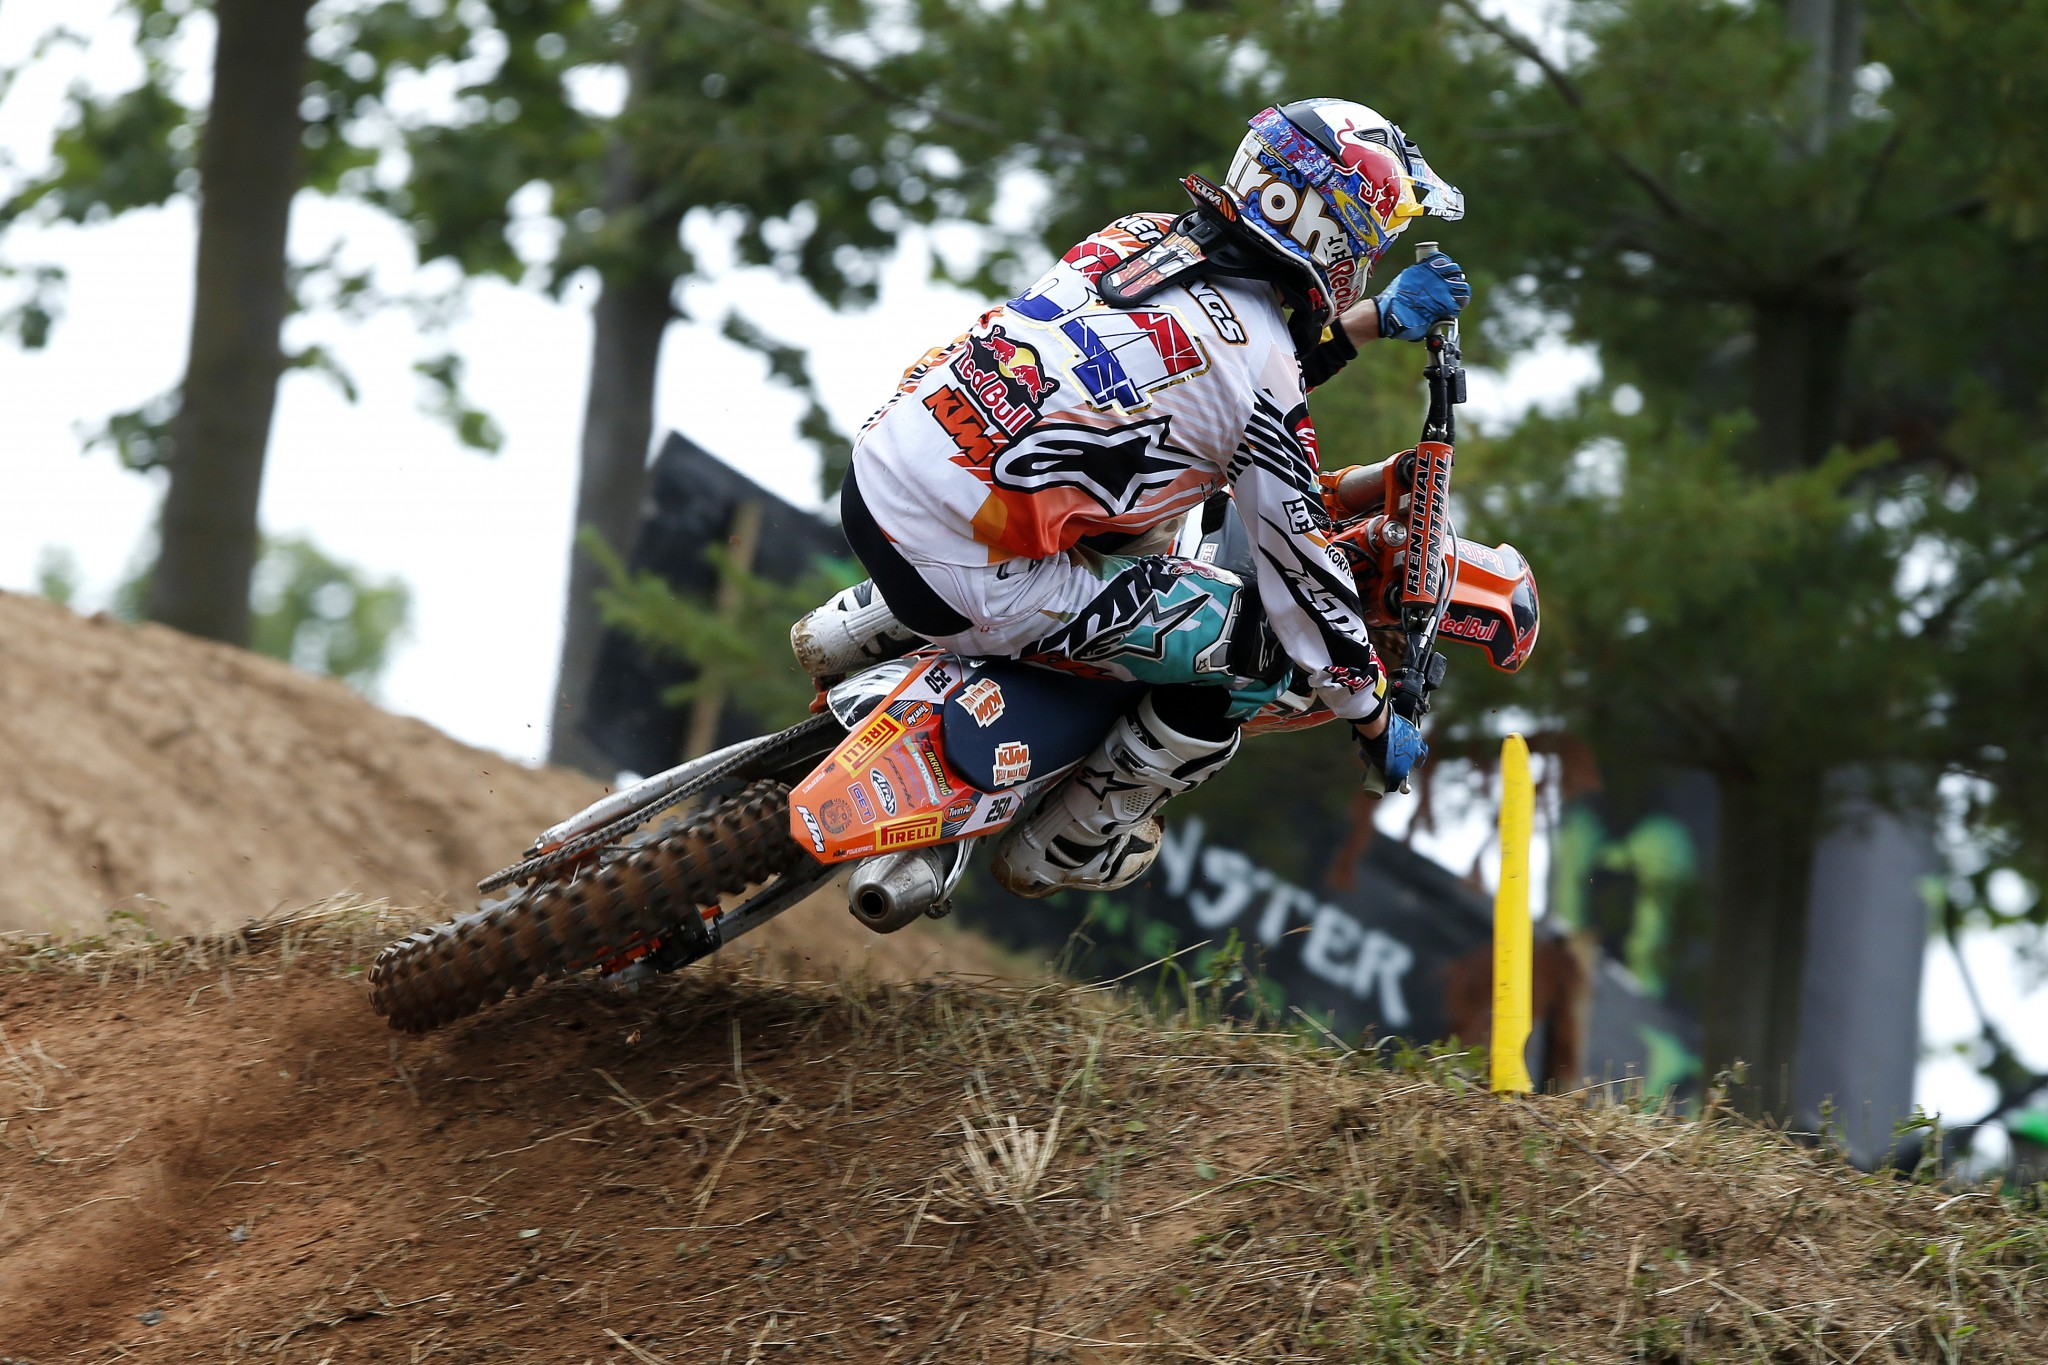 89013_Herlings_MXGP_2014_R10_RX_1278